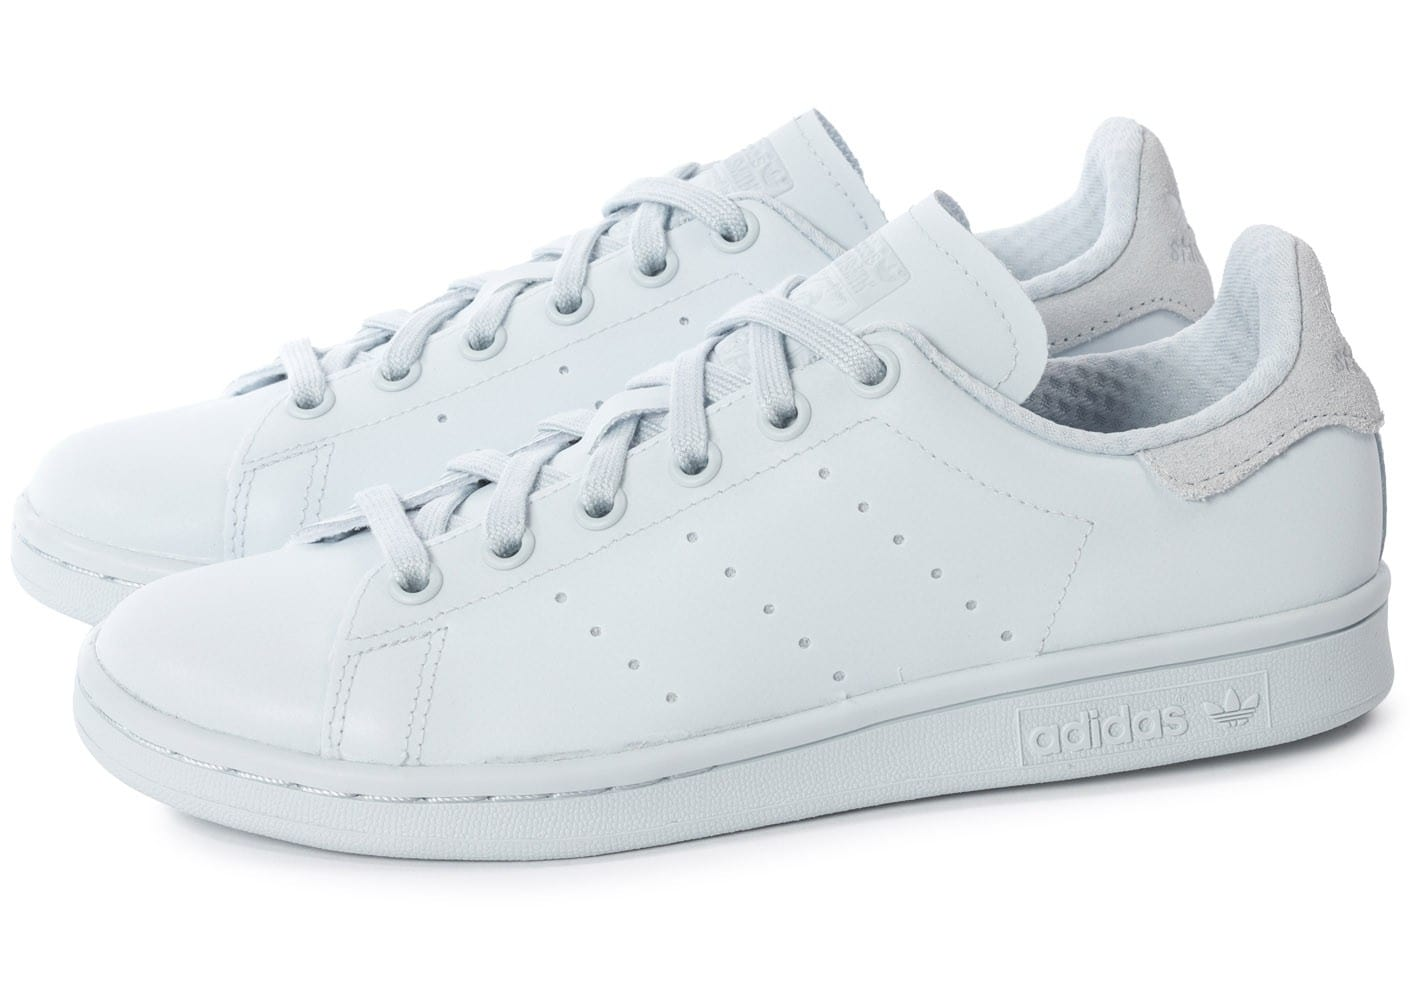 Stan Smith Smith Femme Stan Chaussure Femme Chaussure Chaussure wN0m8vnO